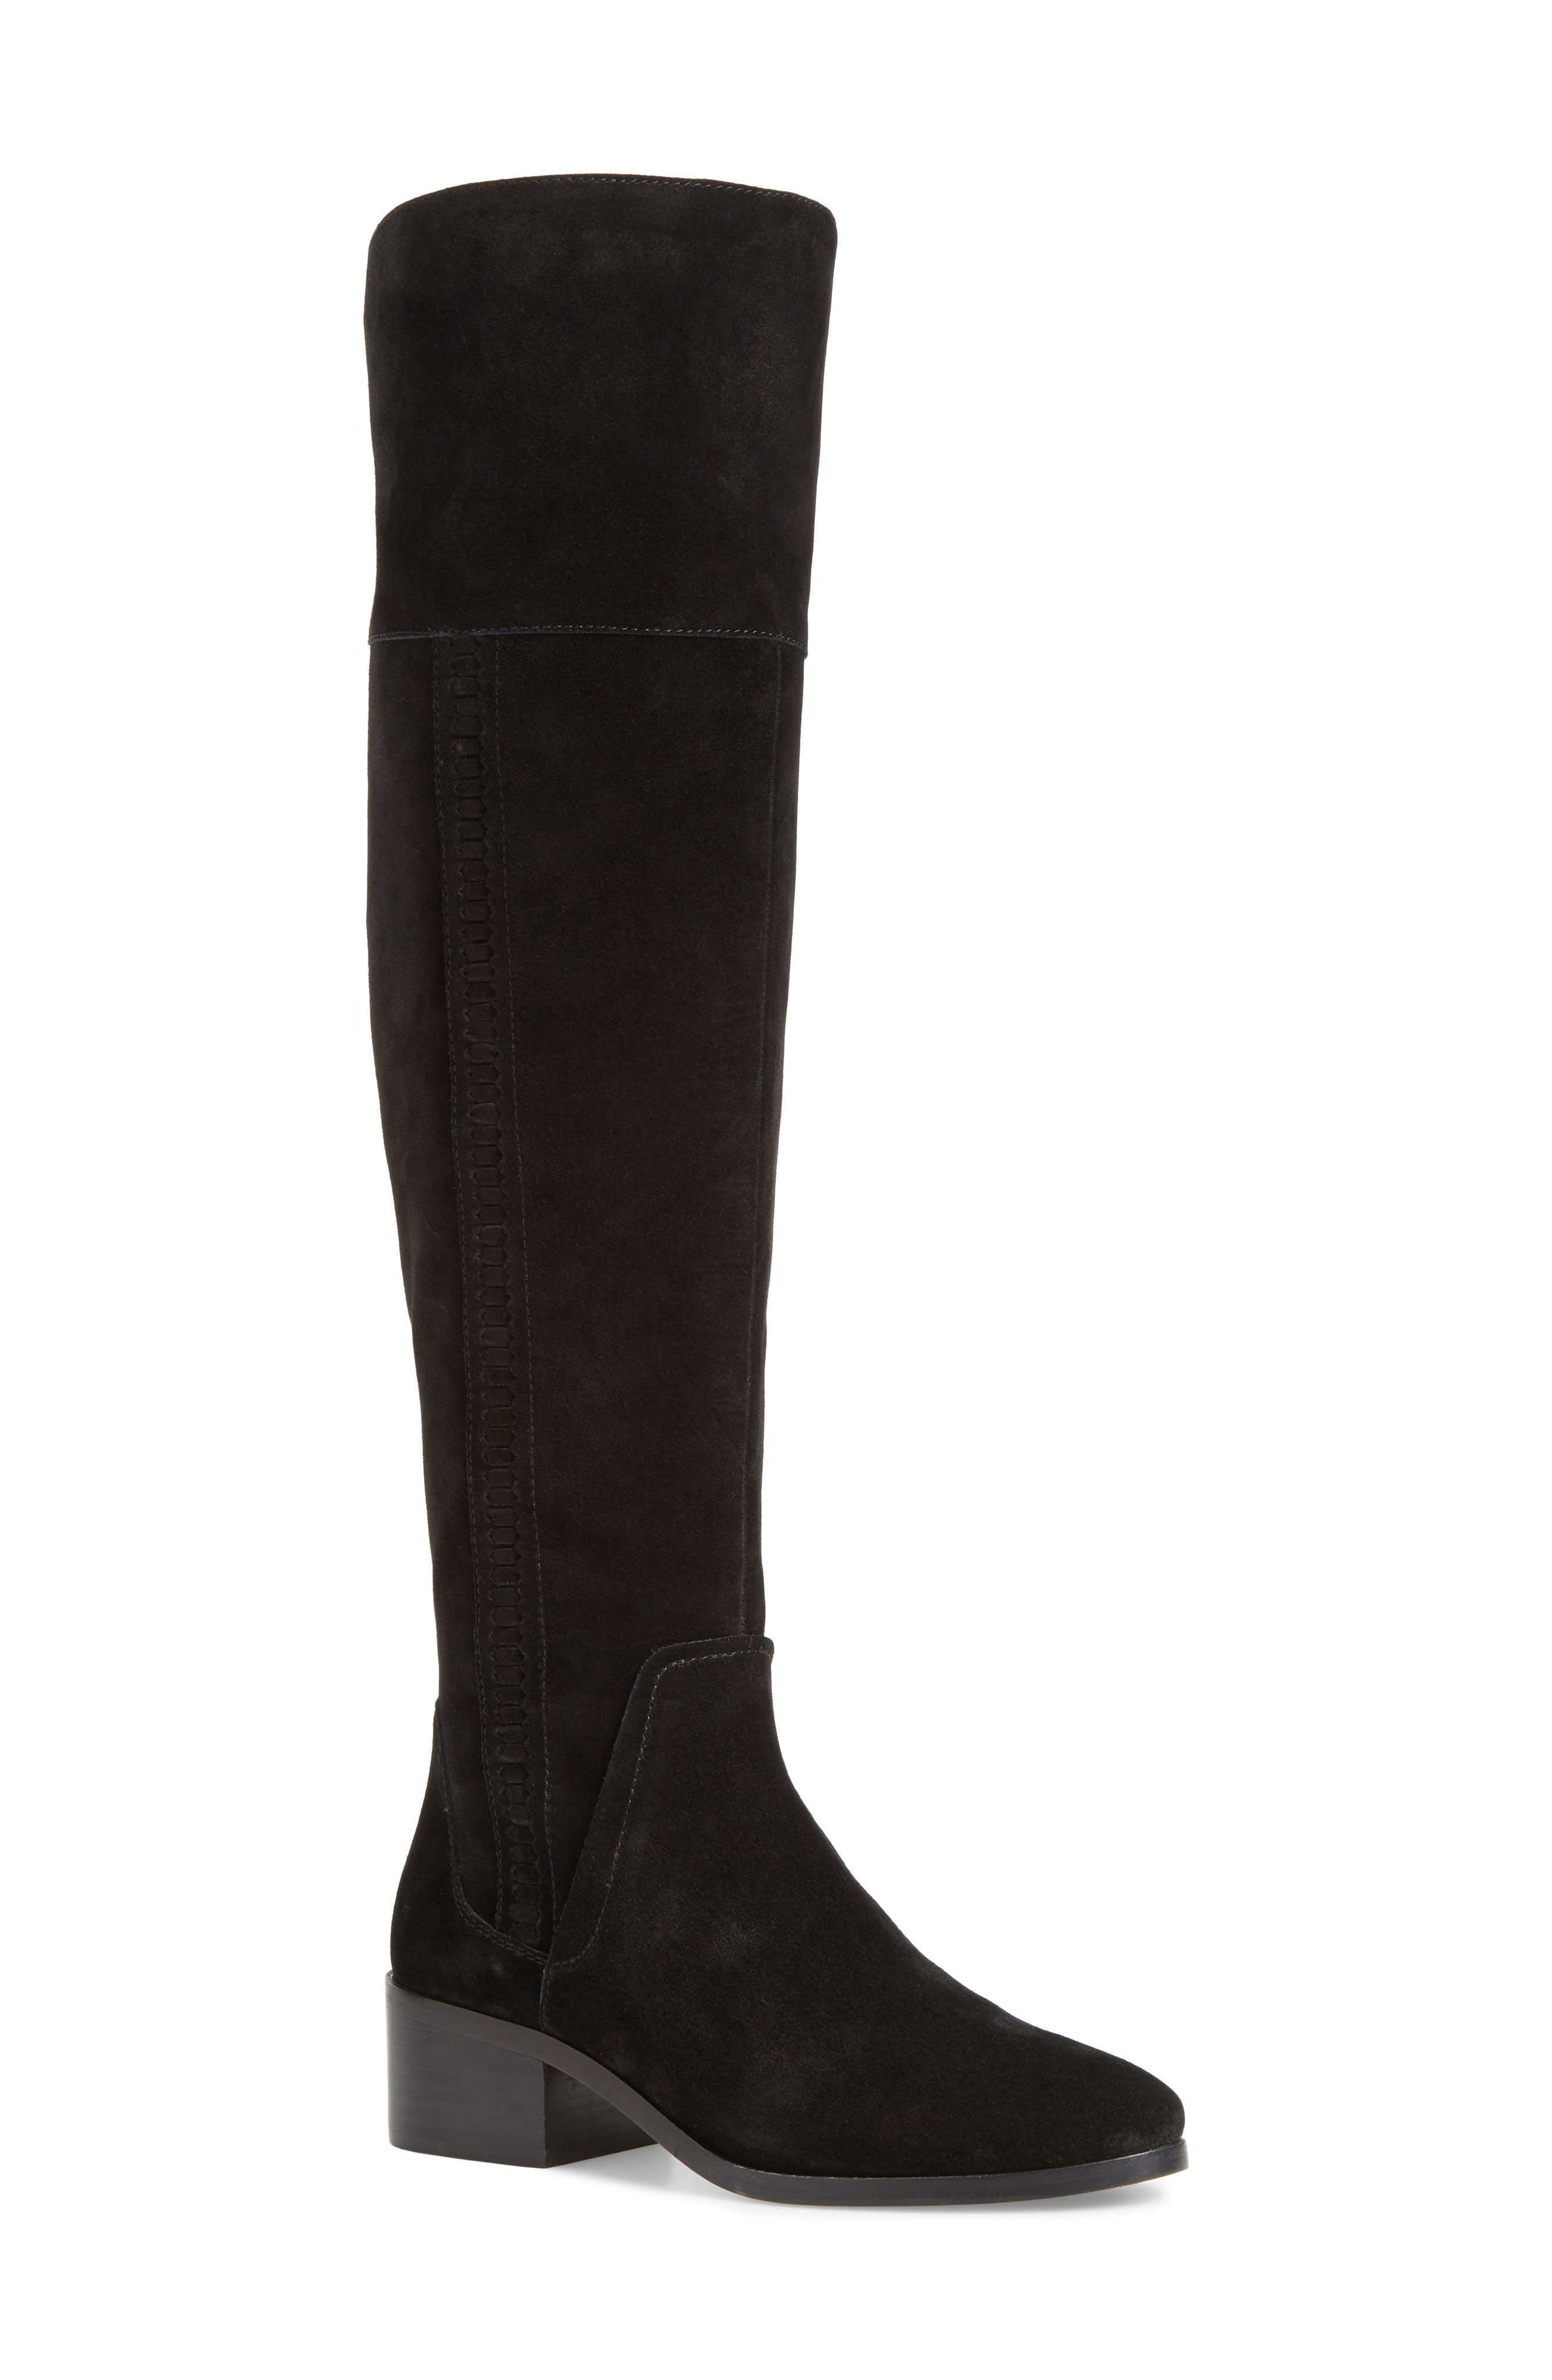 Kochelda Over the Knee Boot,                             Main thumbnail 1, color,                             Black Suede